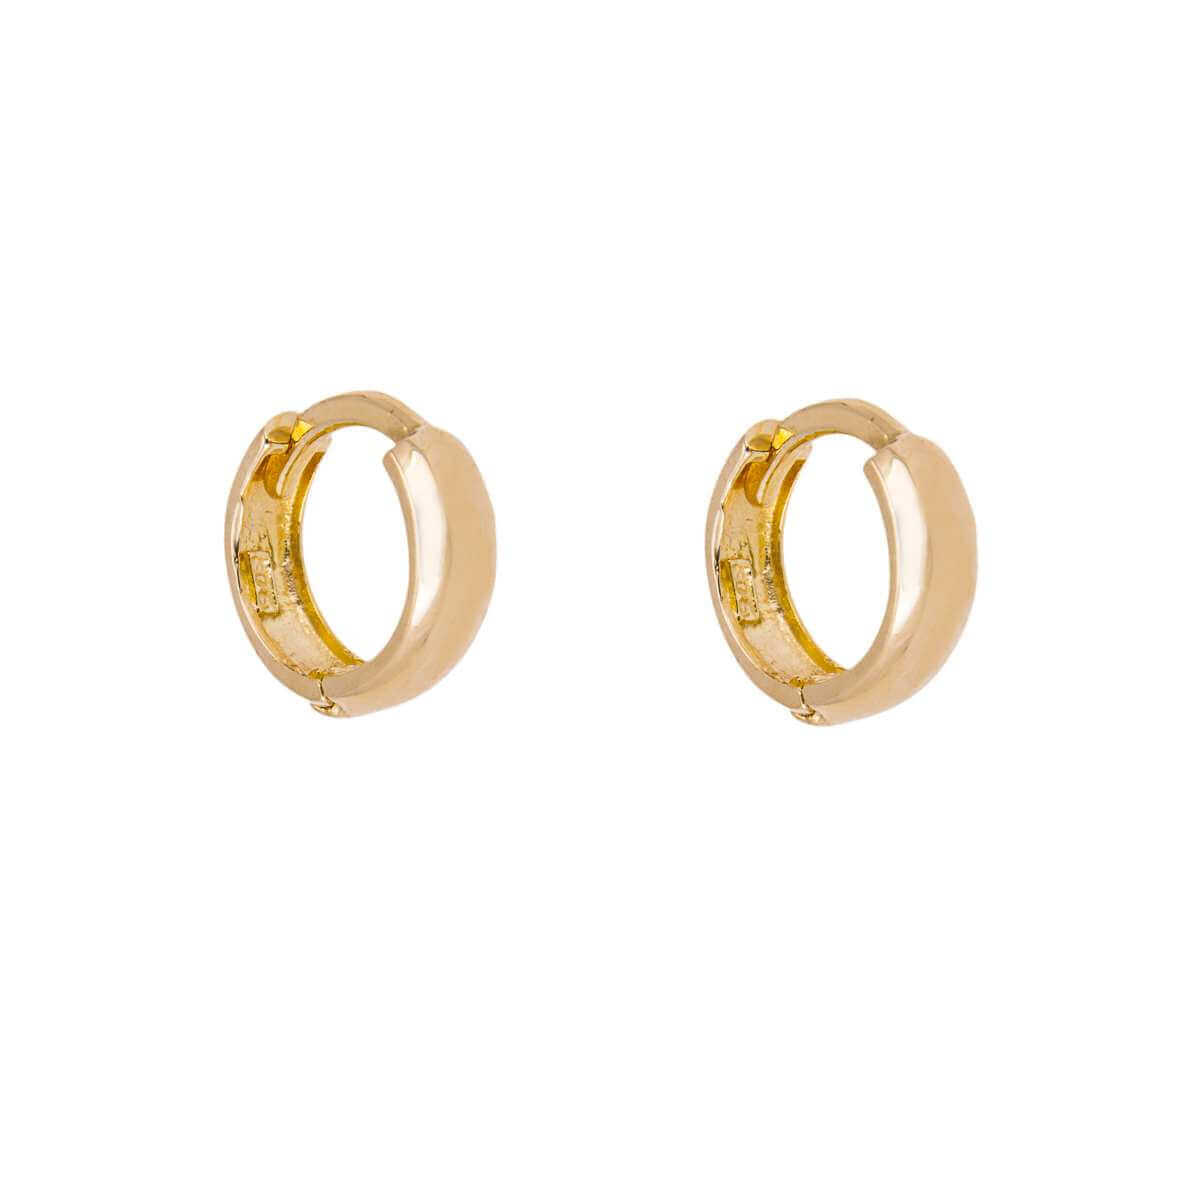 9ct Gold Huggie Hoop Earrings